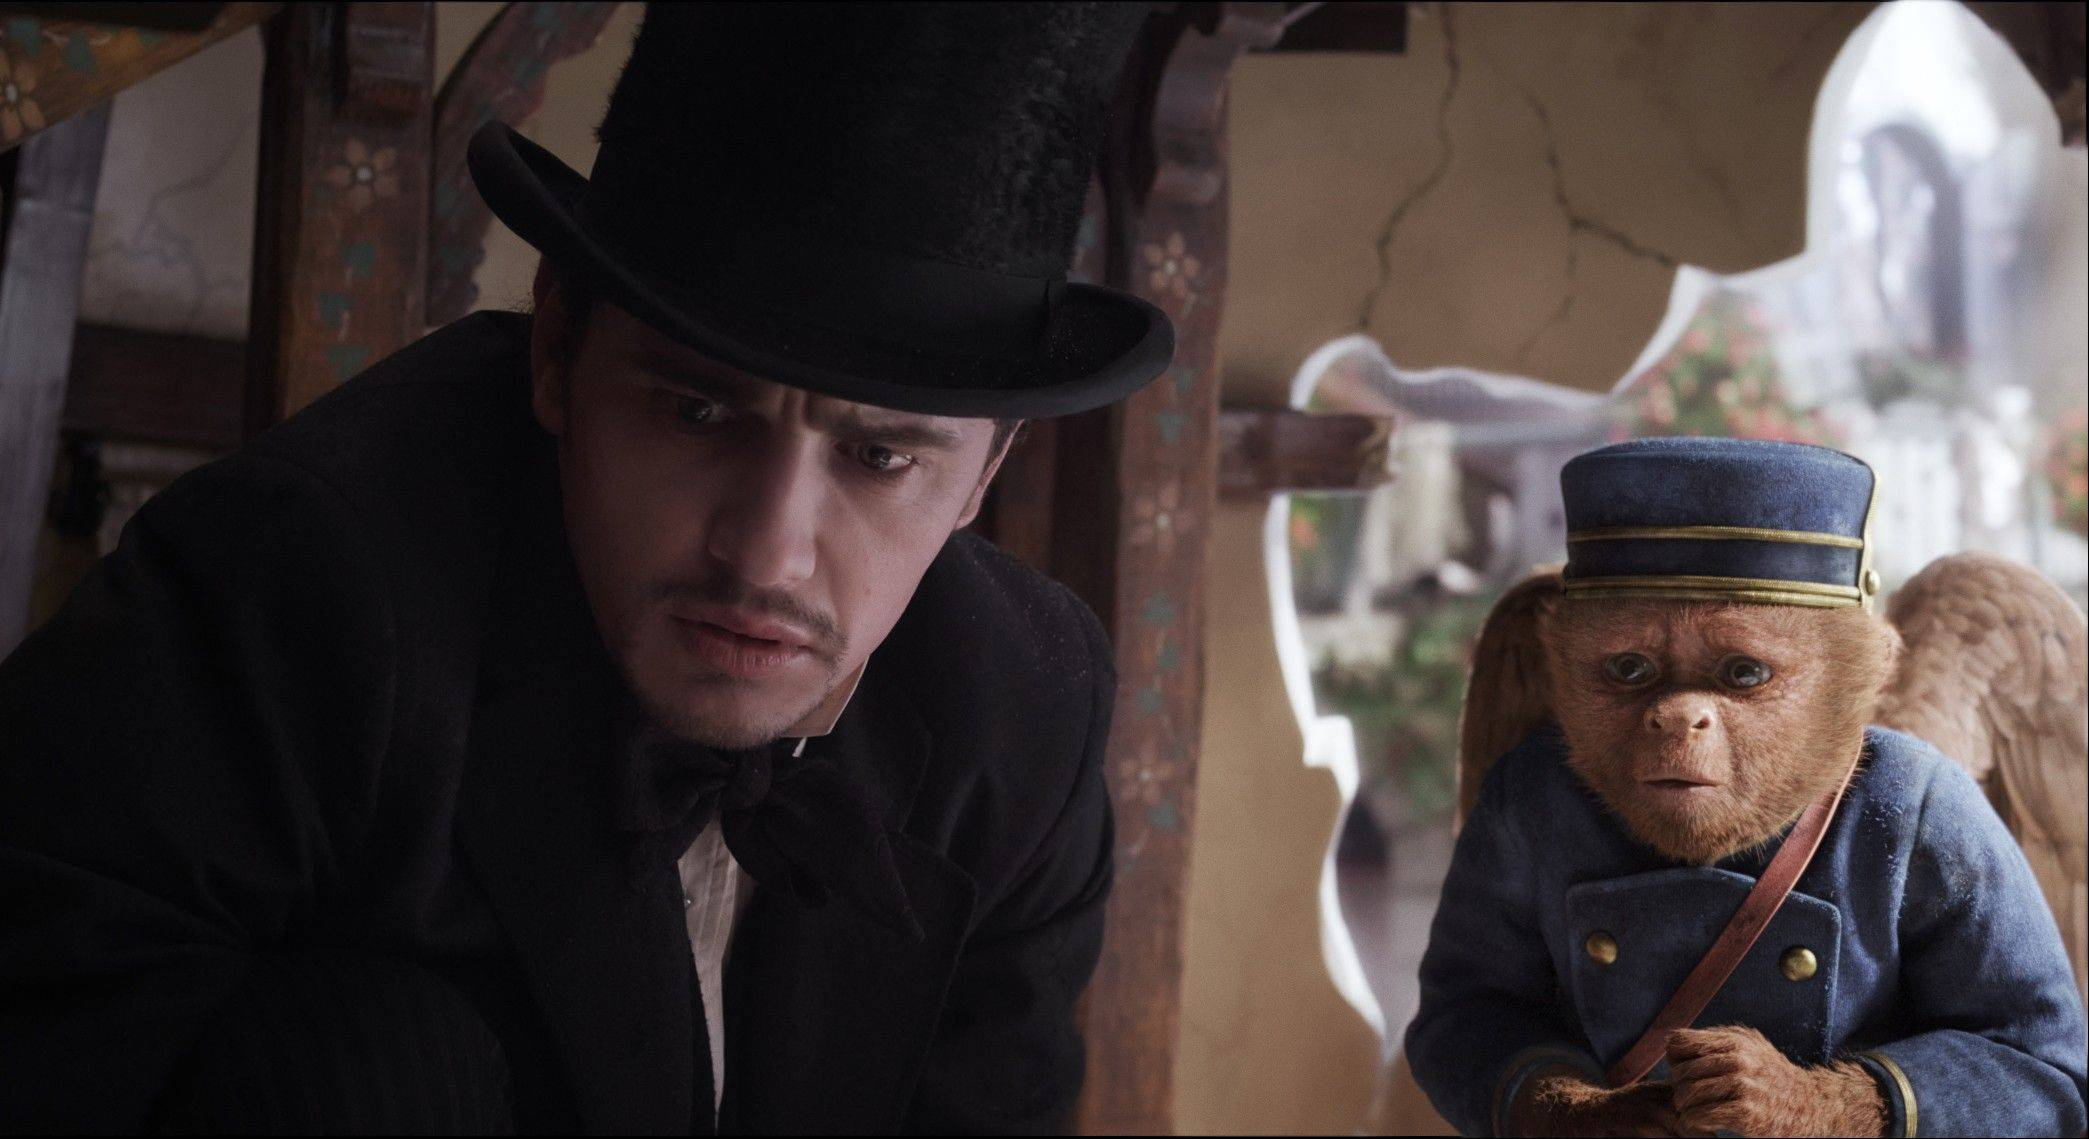 This file film image provided by Disney Enterprises shows James Franco, as Oz, left, and the character Finley, voiced by Zach Braff, in a scene from �Oz the Great and Powerful.� The Walt Disney 3-D blockbuster has led all films for the second week in a row, taking in $42.2 million according to studio estimates Sunday, March 17, 2013.